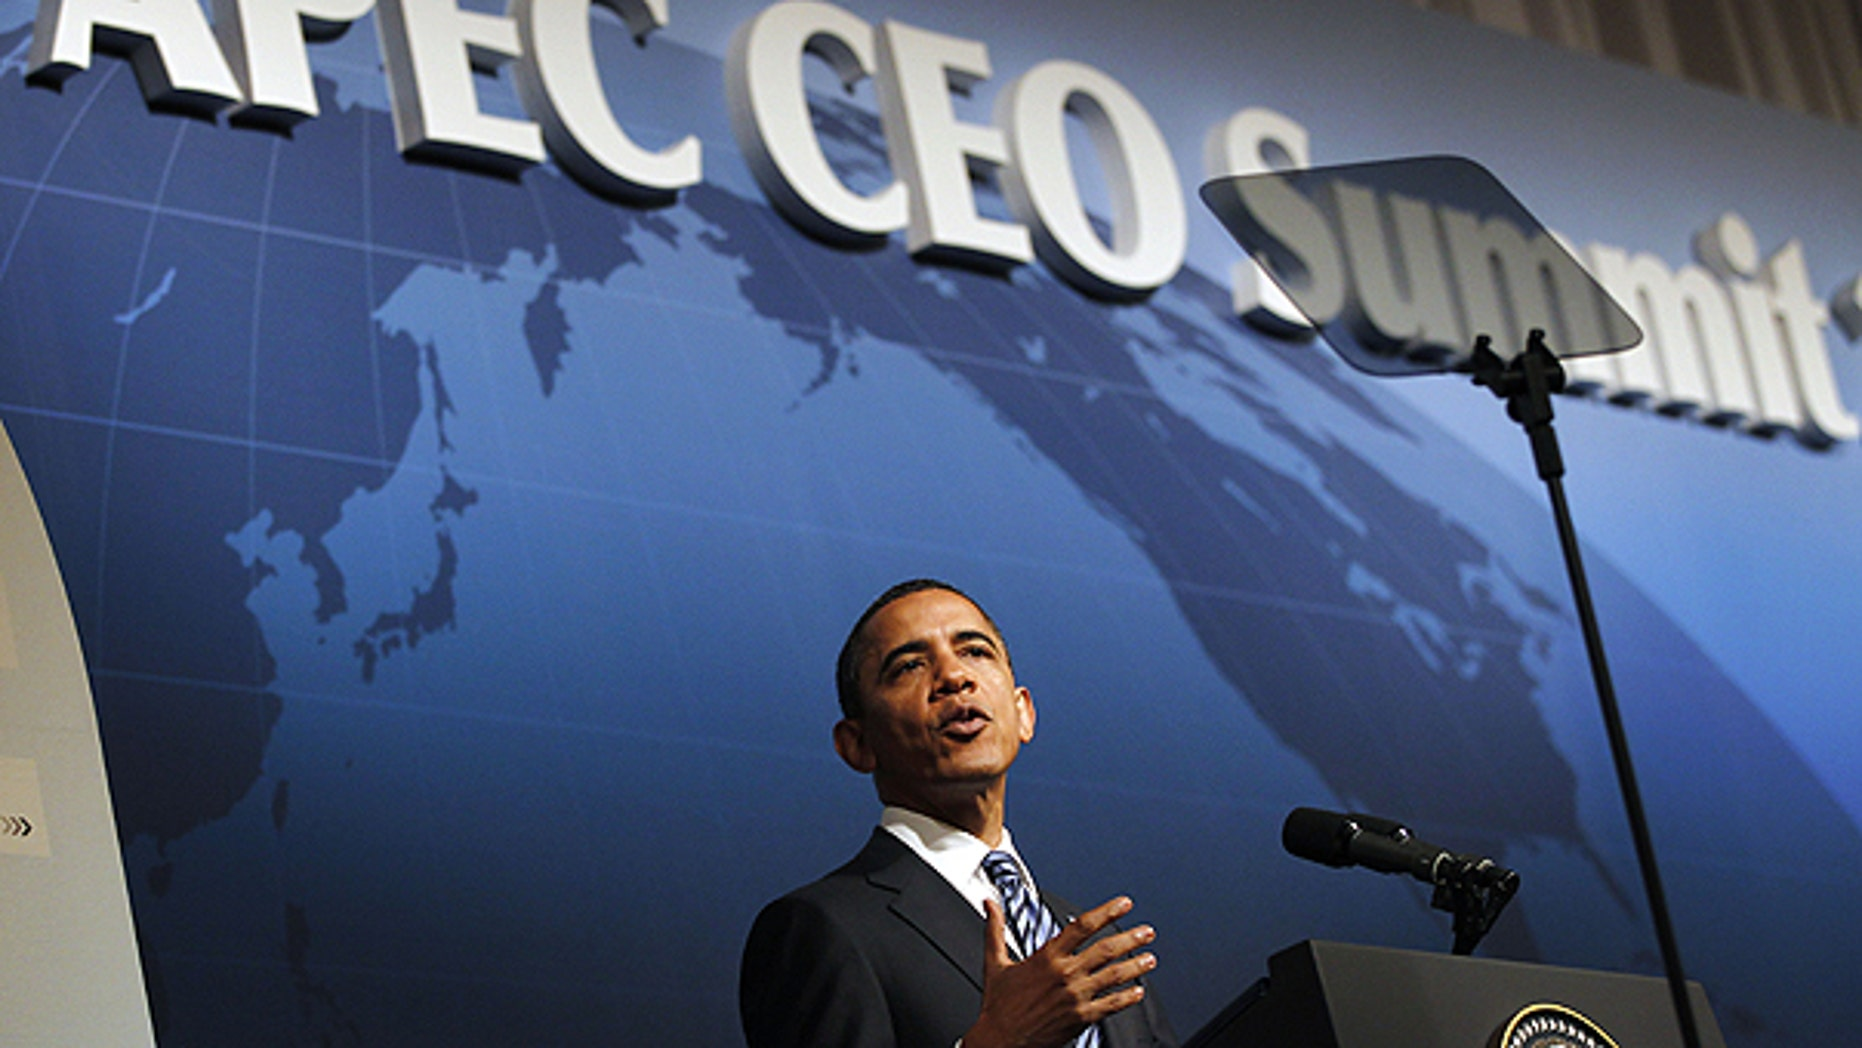 Nov. 13: President Obama speaks at the CEO business summit at the APEC summit in Yokohama.